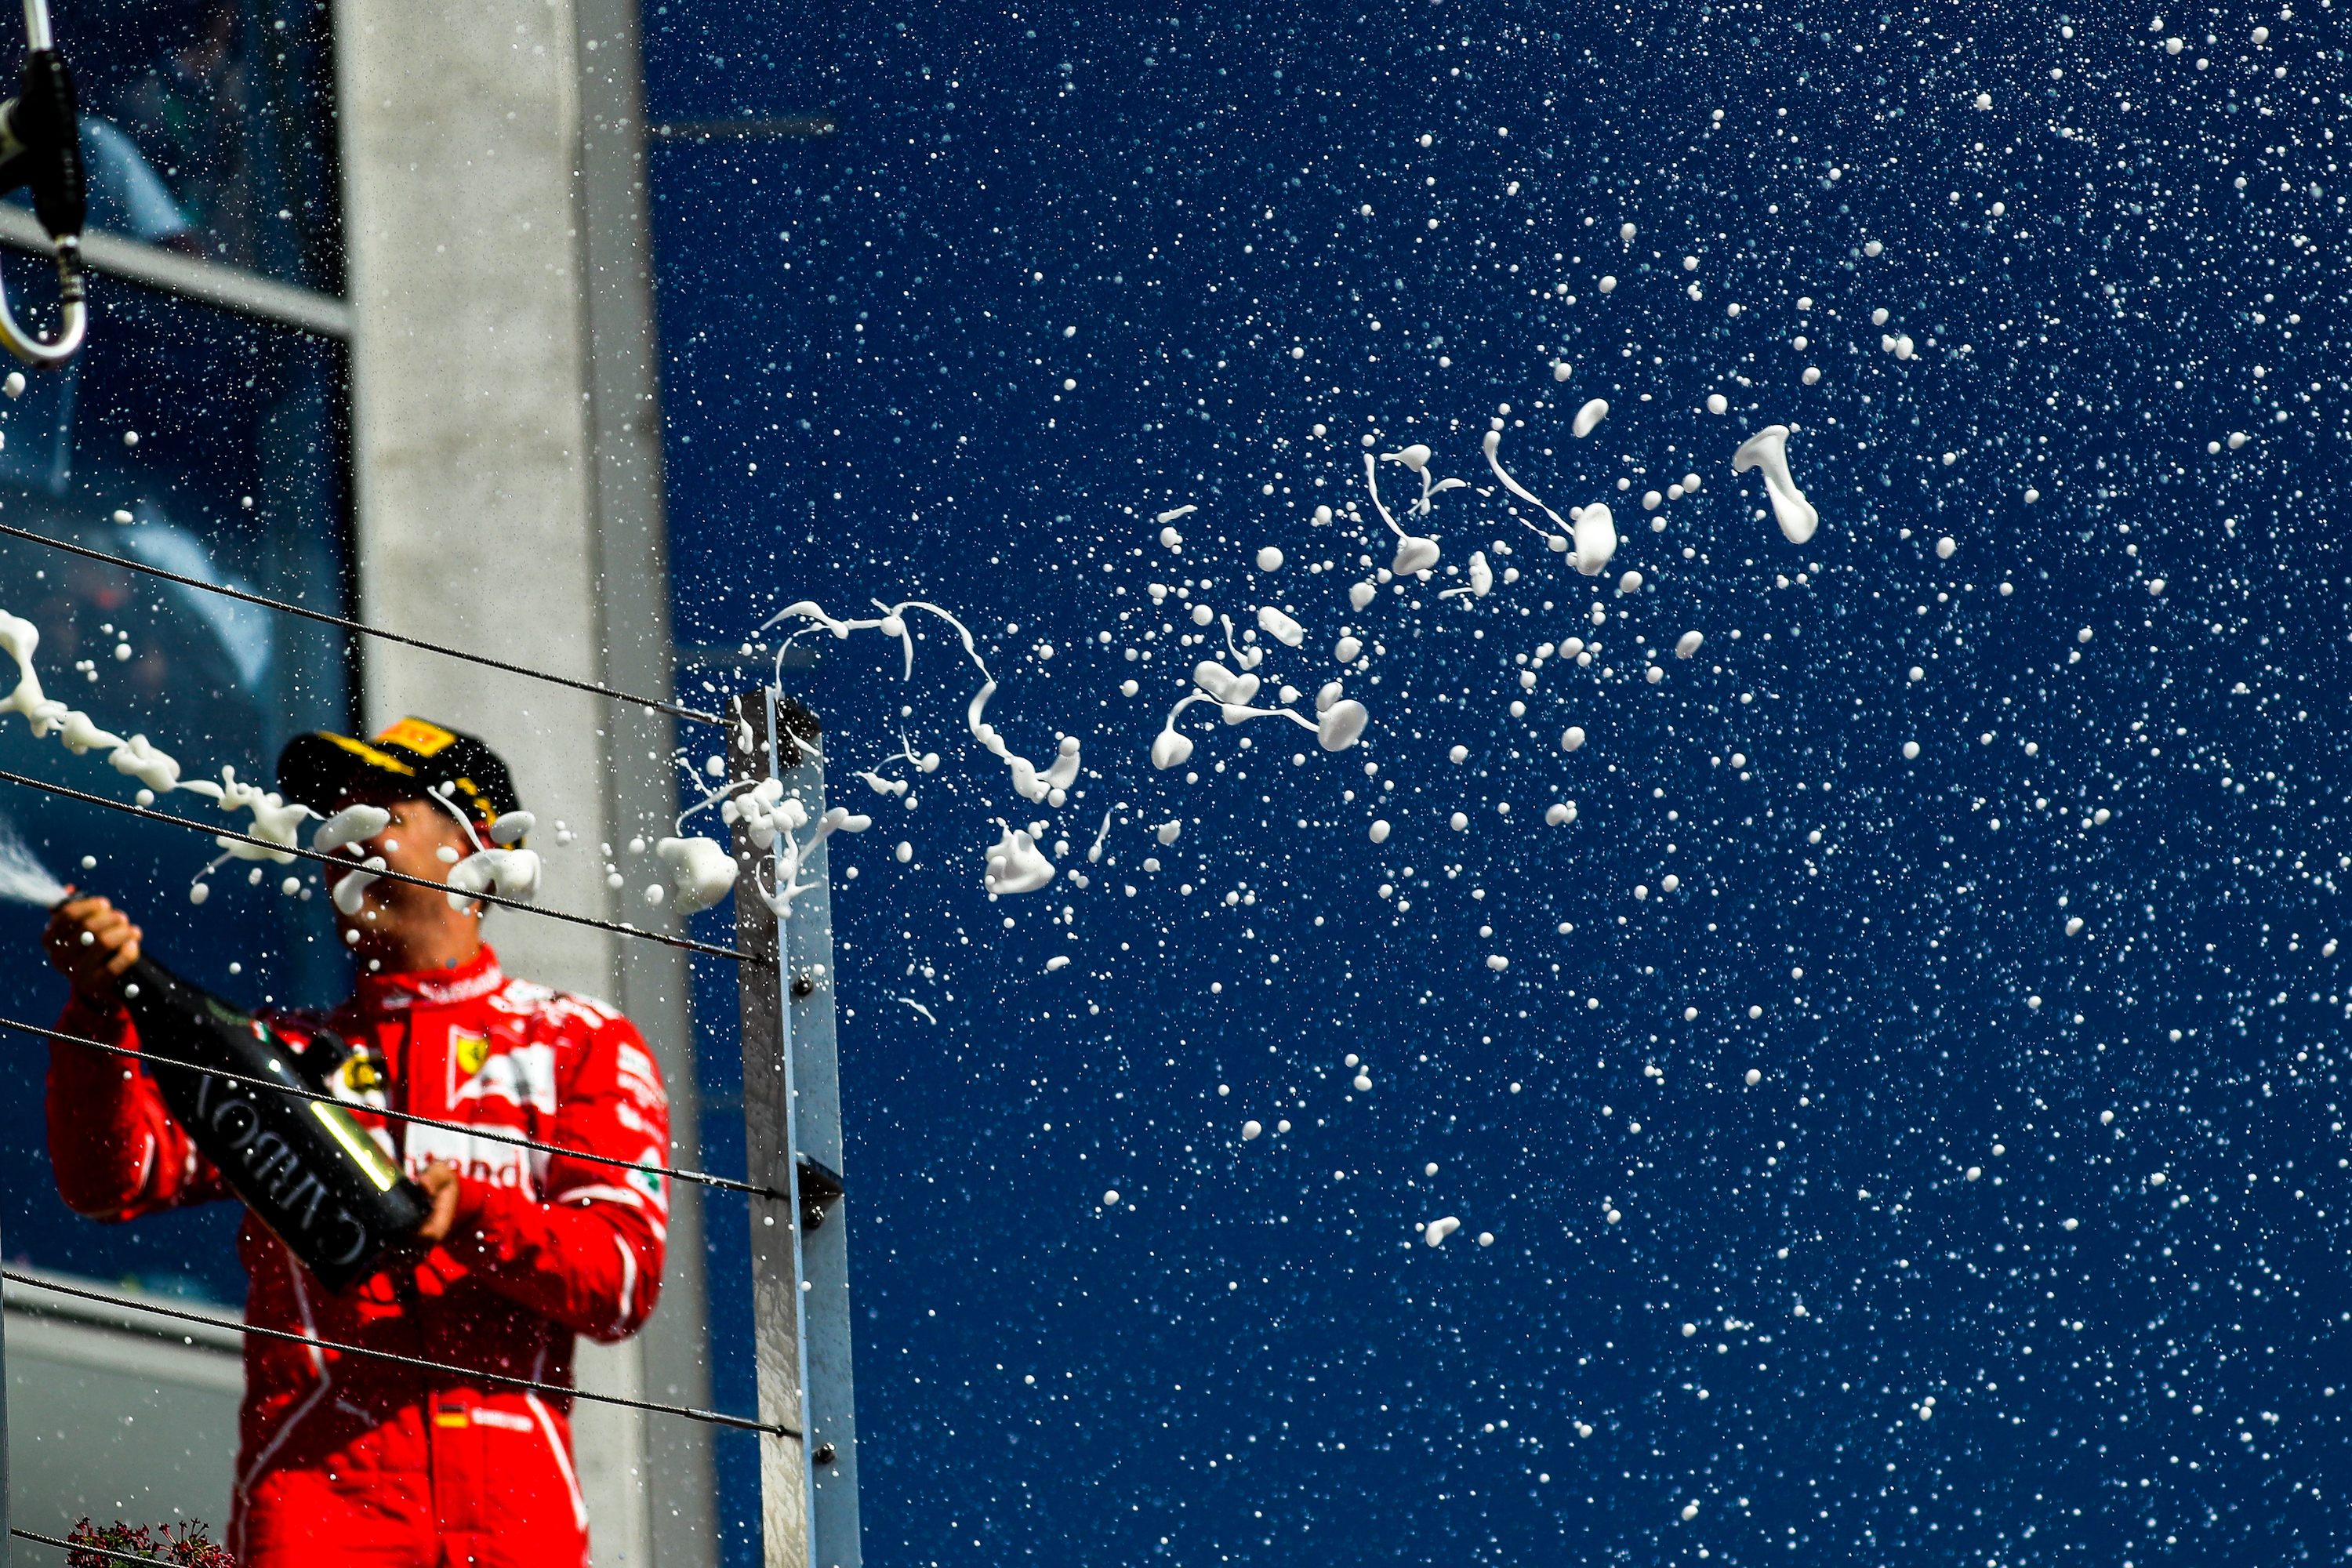 Champagne bubbles at the podium celebrations at Formula One World Championship, 2017 Hungarian Grand Prix.